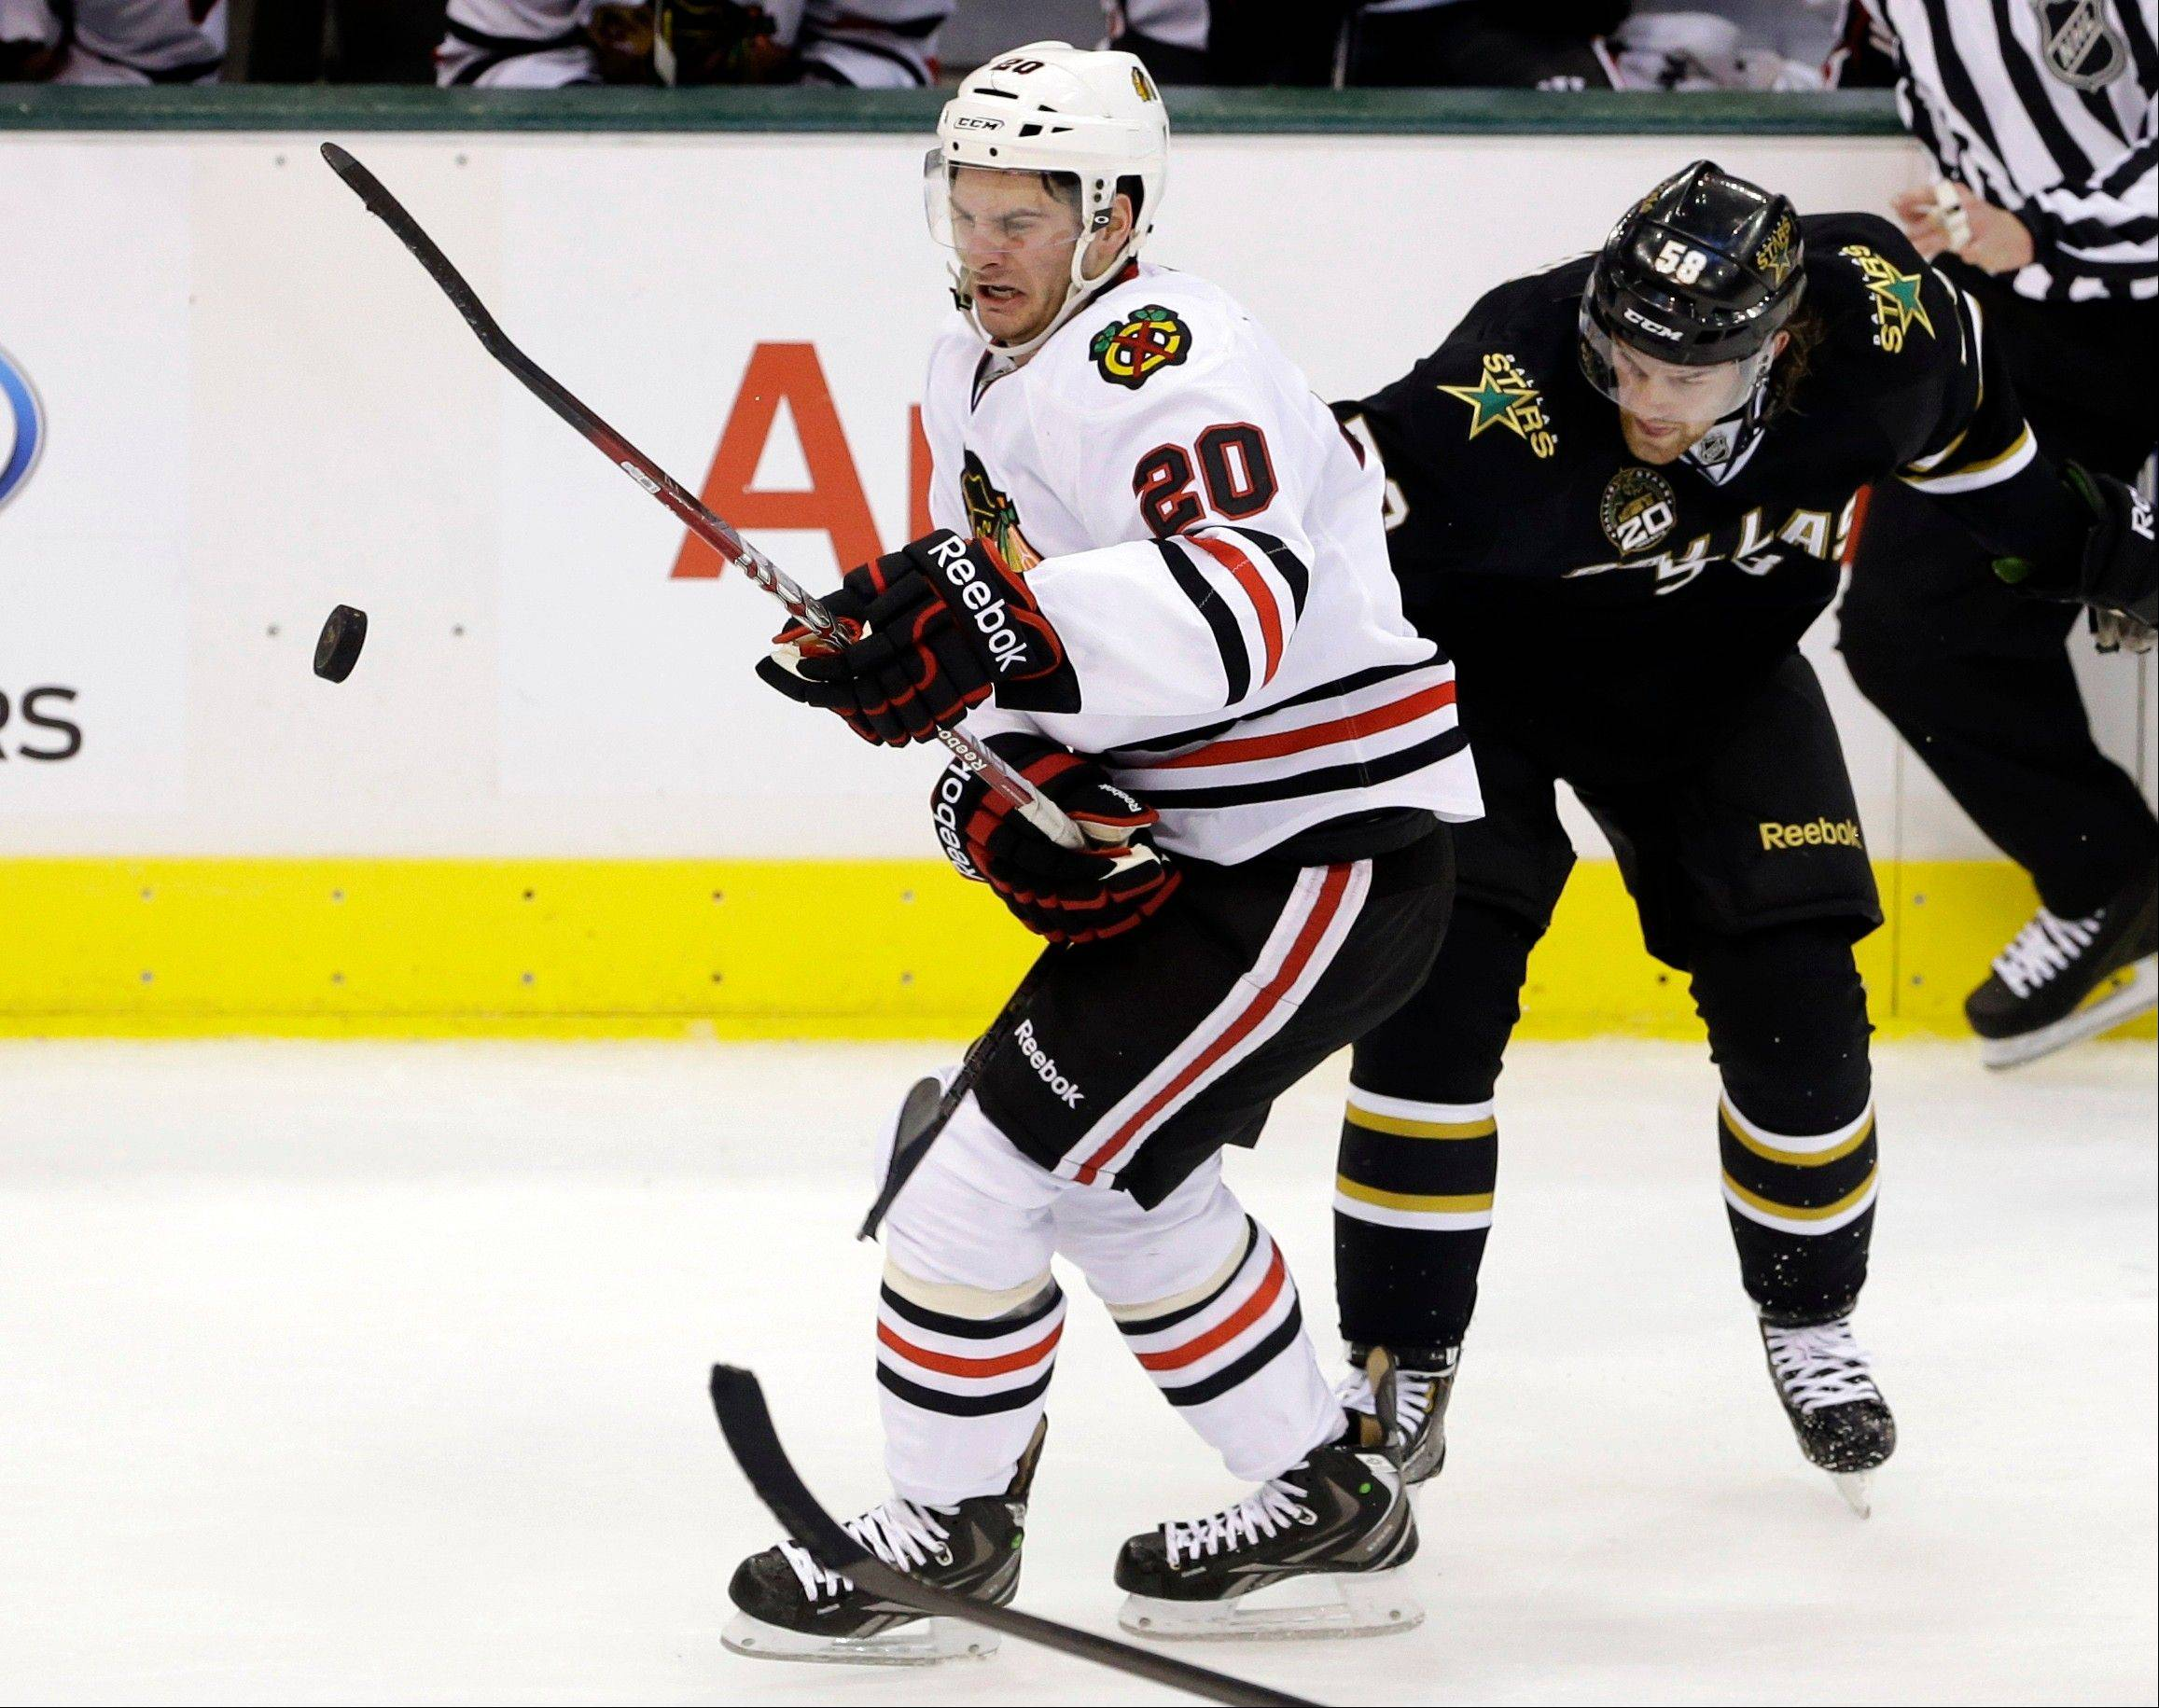 Left winger Brandon Saad (20) has impressed Blackhawks head coach Joel Quenneville this season despite going scoreless on the top line with Jonathan Toews and Marian Hossa.